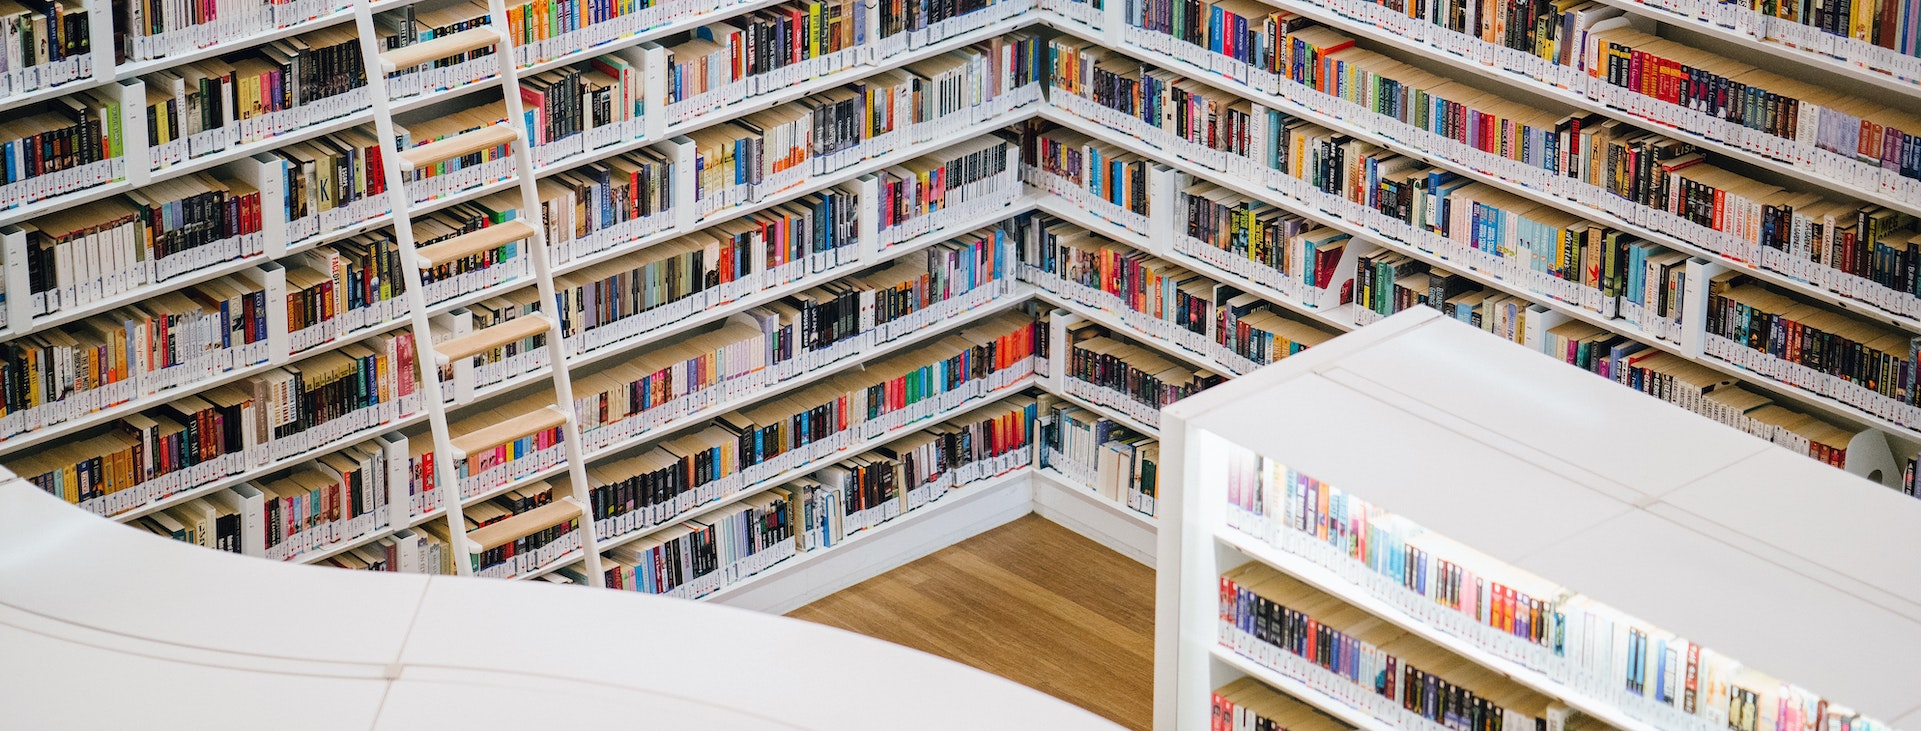 Colourful library shelves in Quebec City